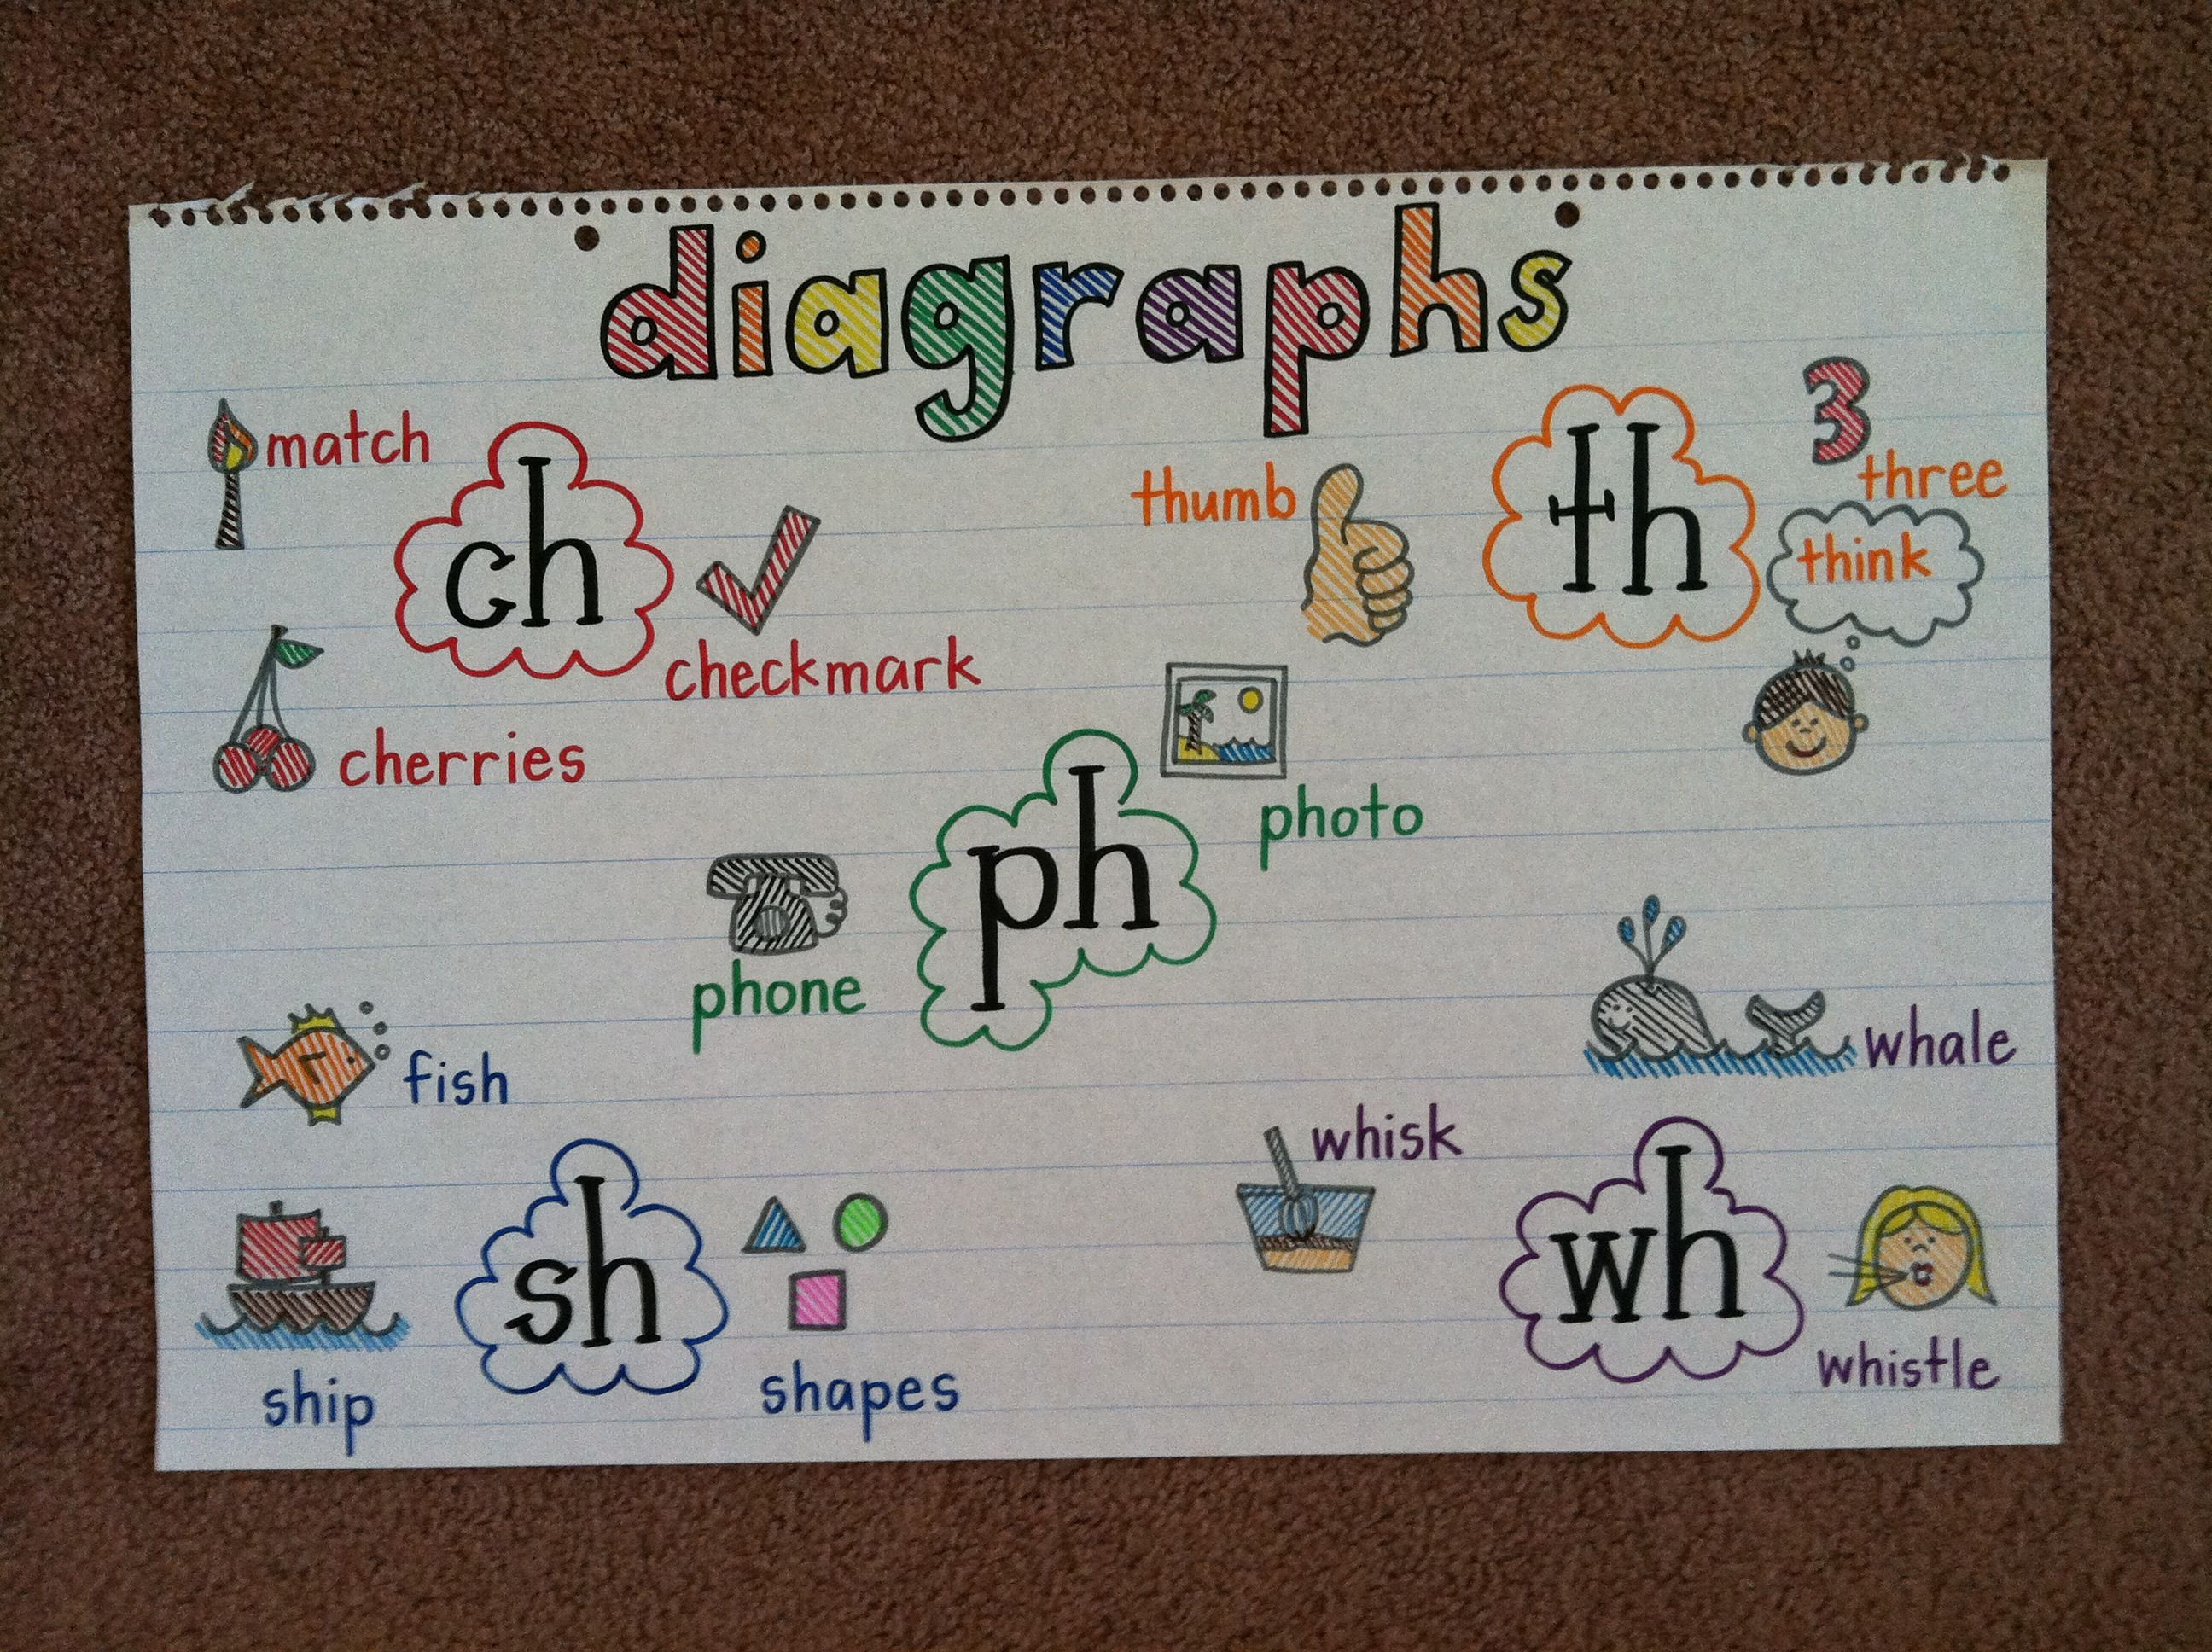 medium resolution of Diargaph Gh Phonics Worksheet   Printable Worksheets and Activities for  Teachers